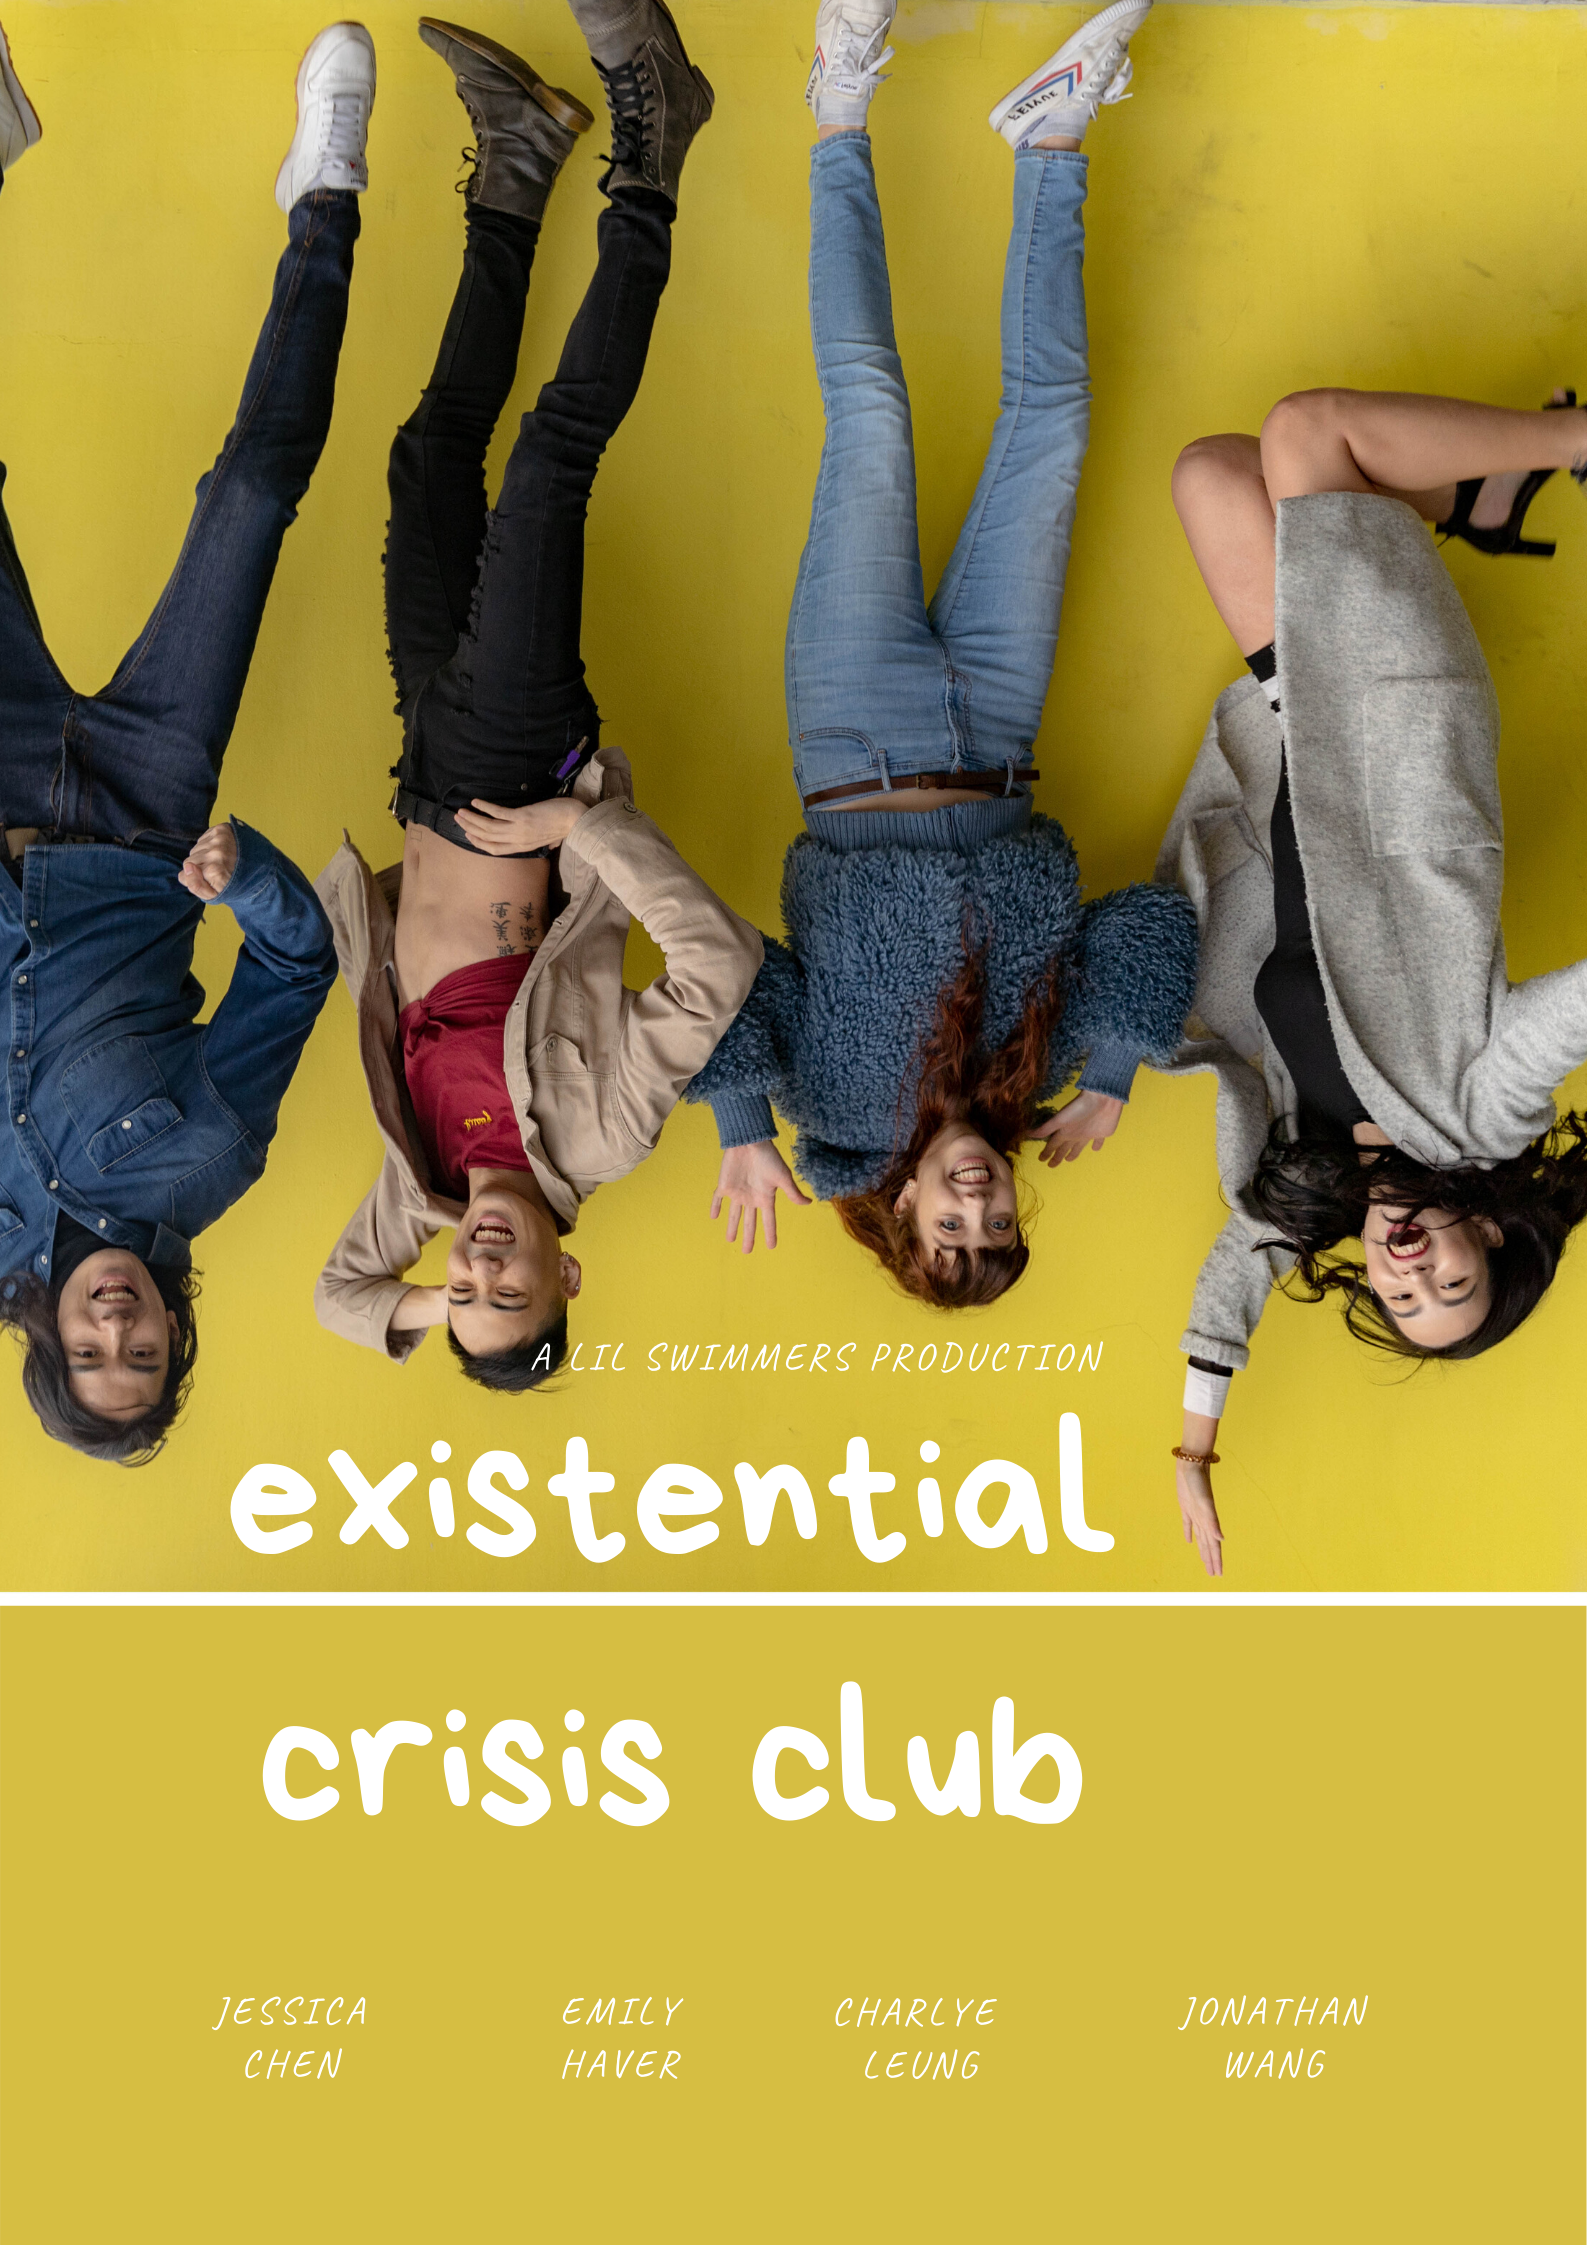 Existential Crisis Club (Post-Production)